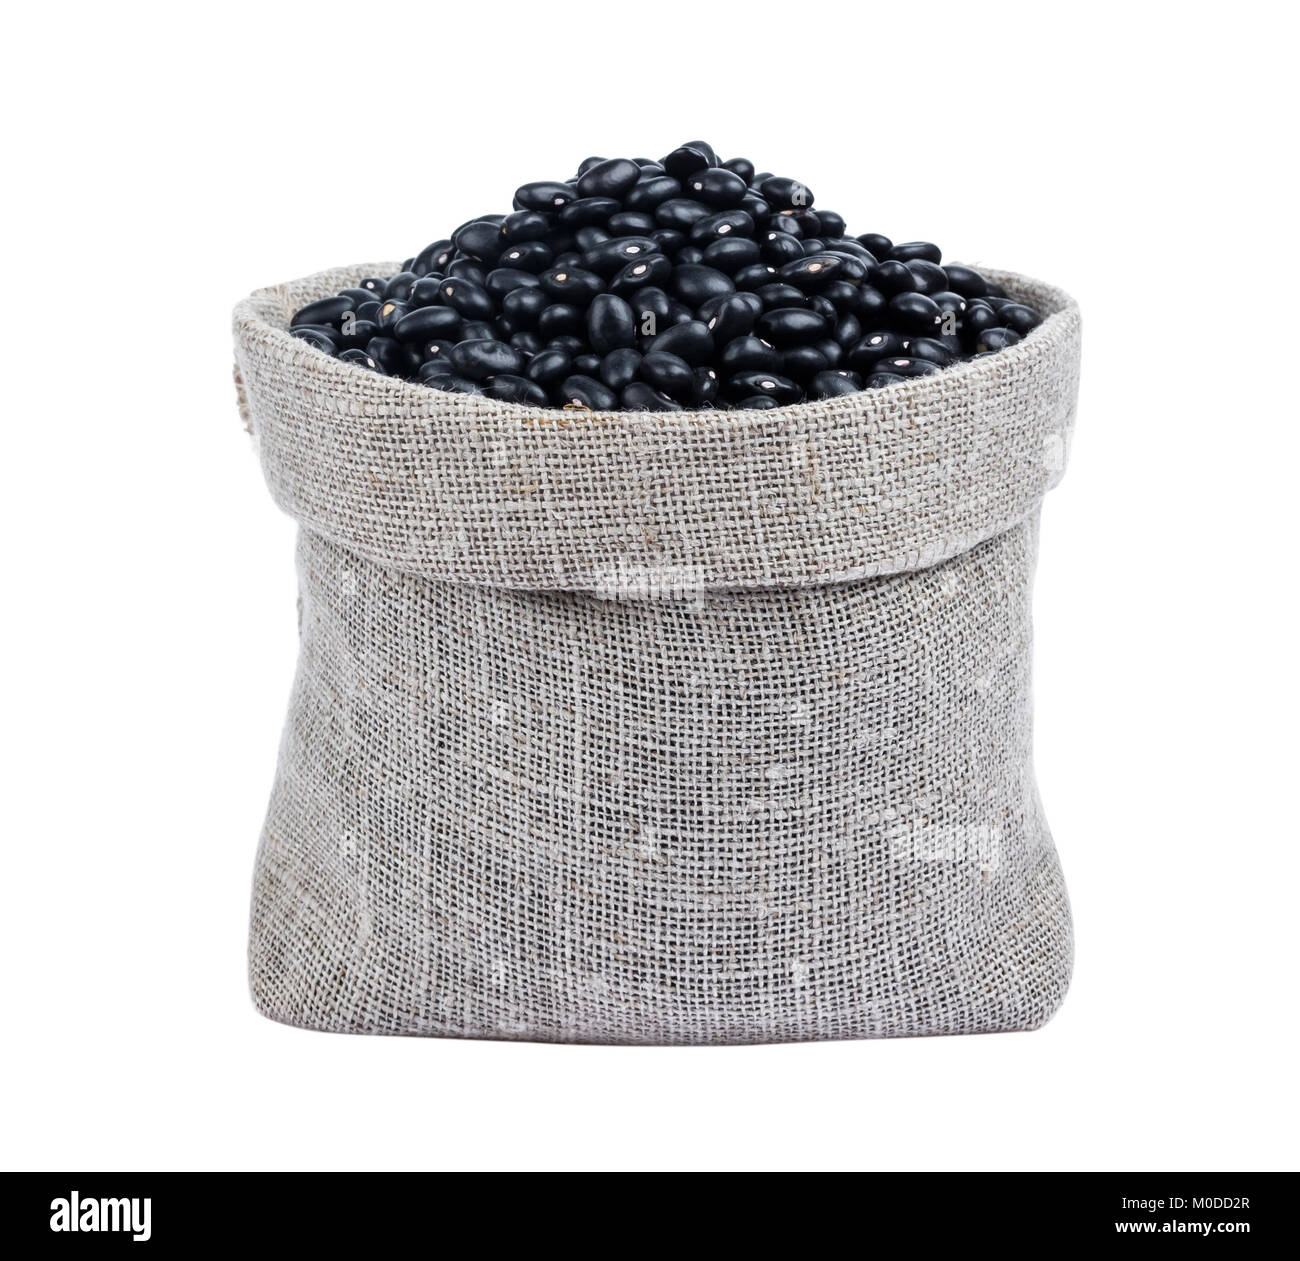 Black beans in bag isolated on white background - Stock Image